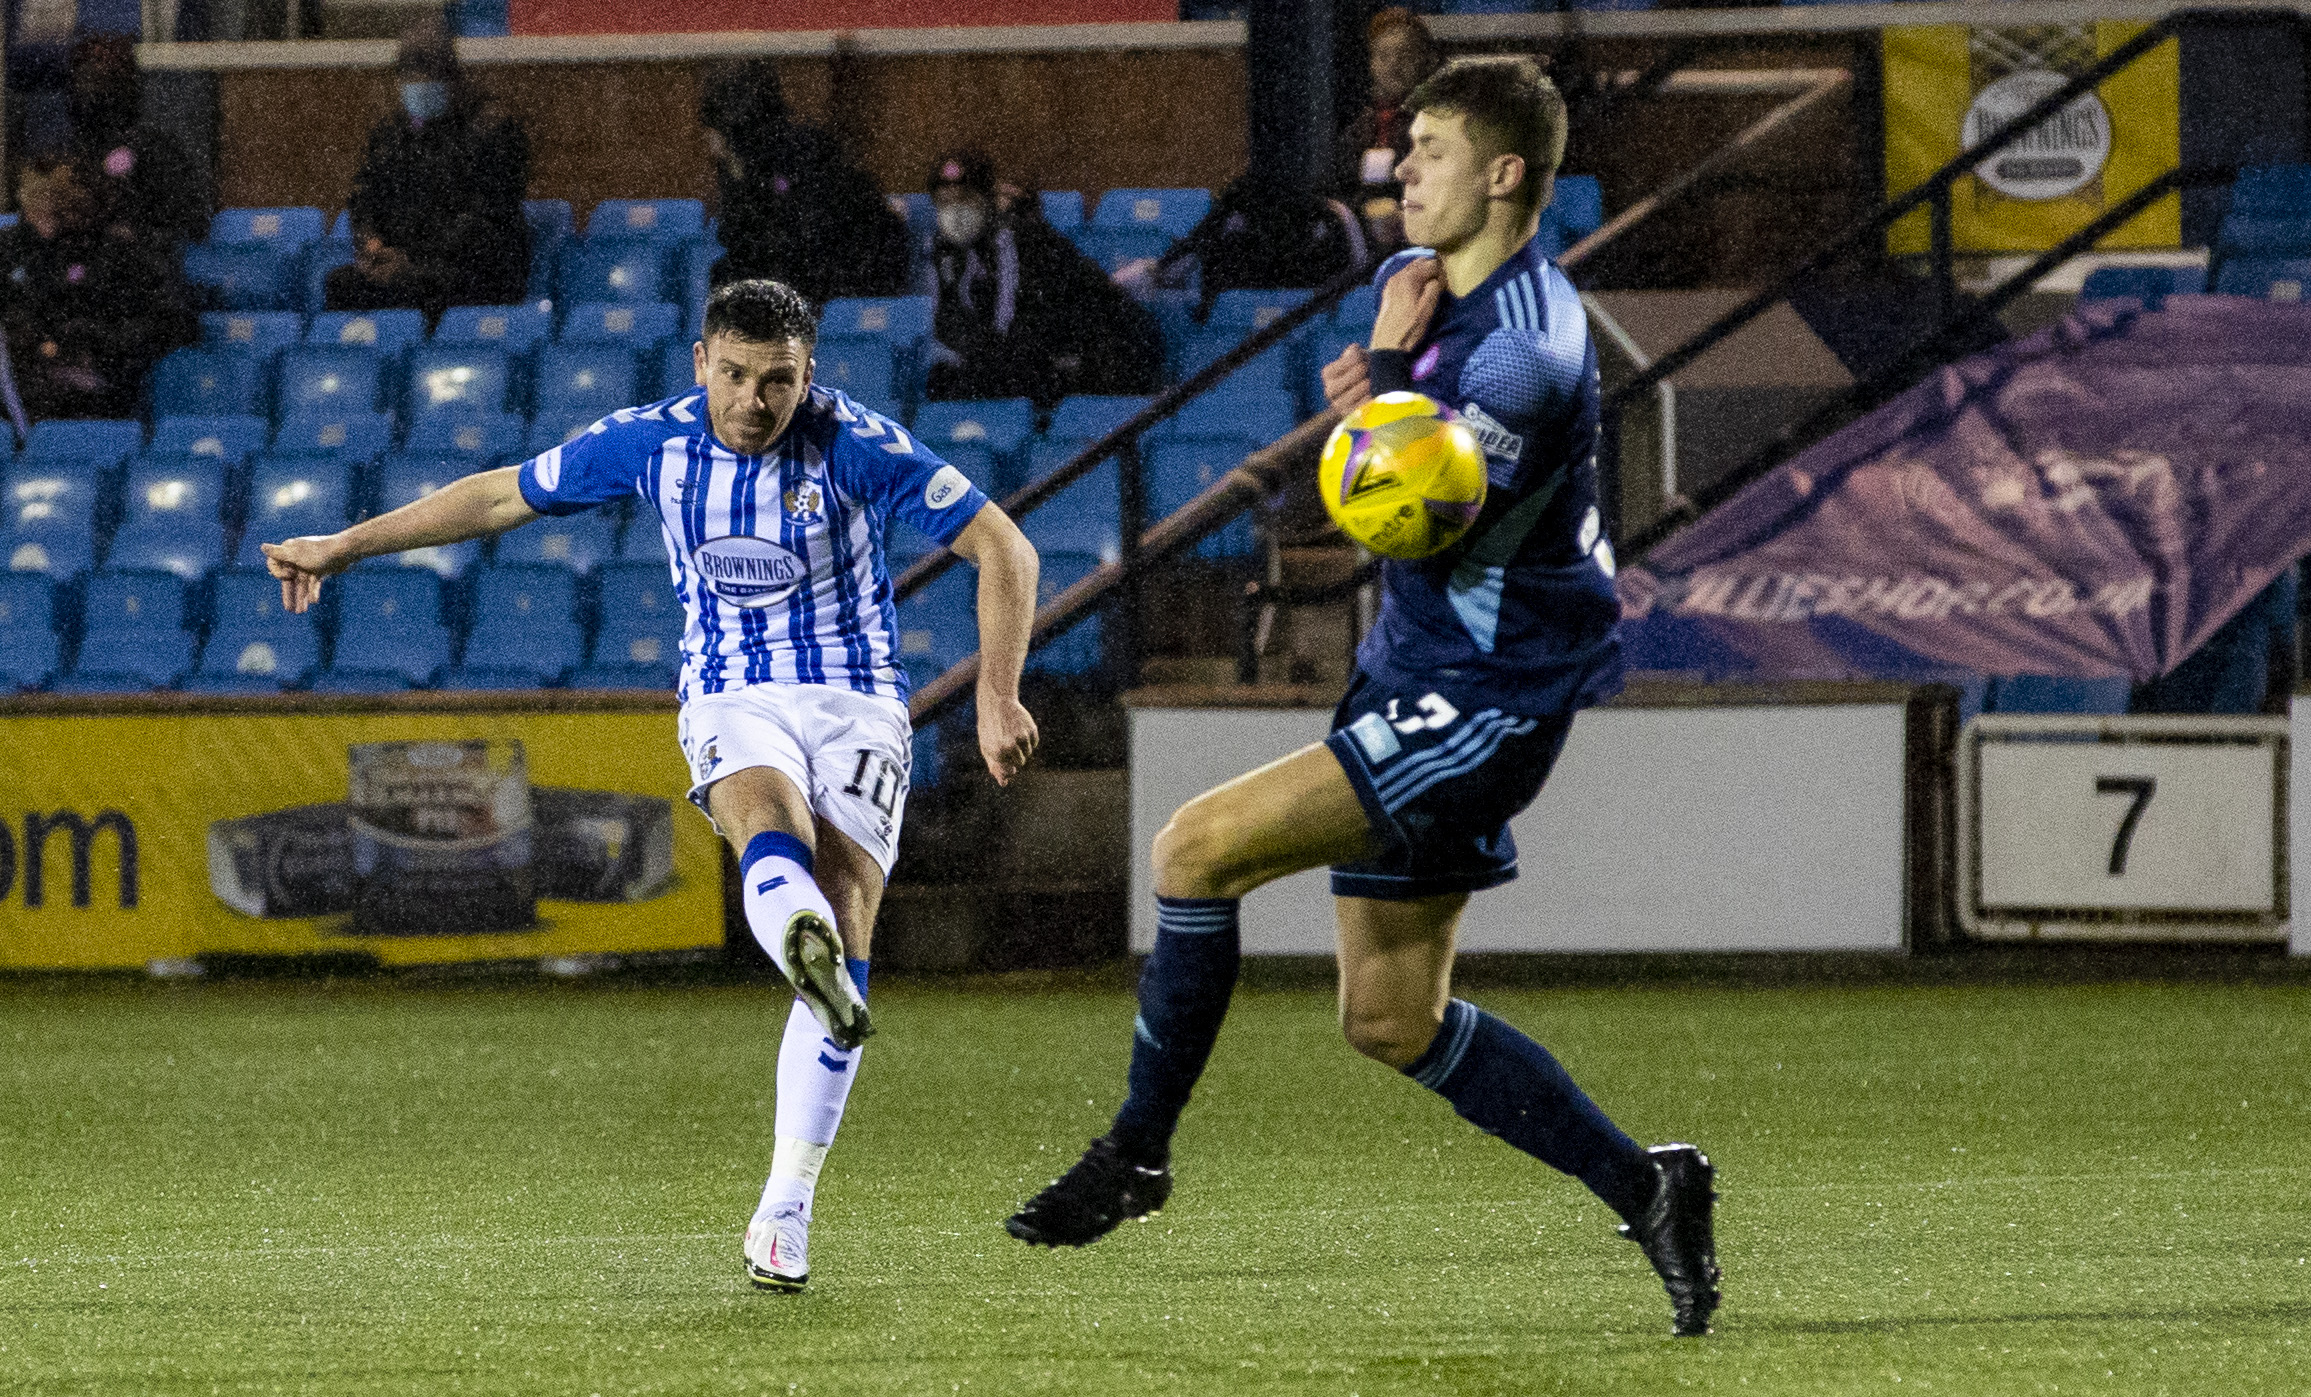 Kilmarnock v Hamilton Academical - Ladbrokes Scottish Premiership